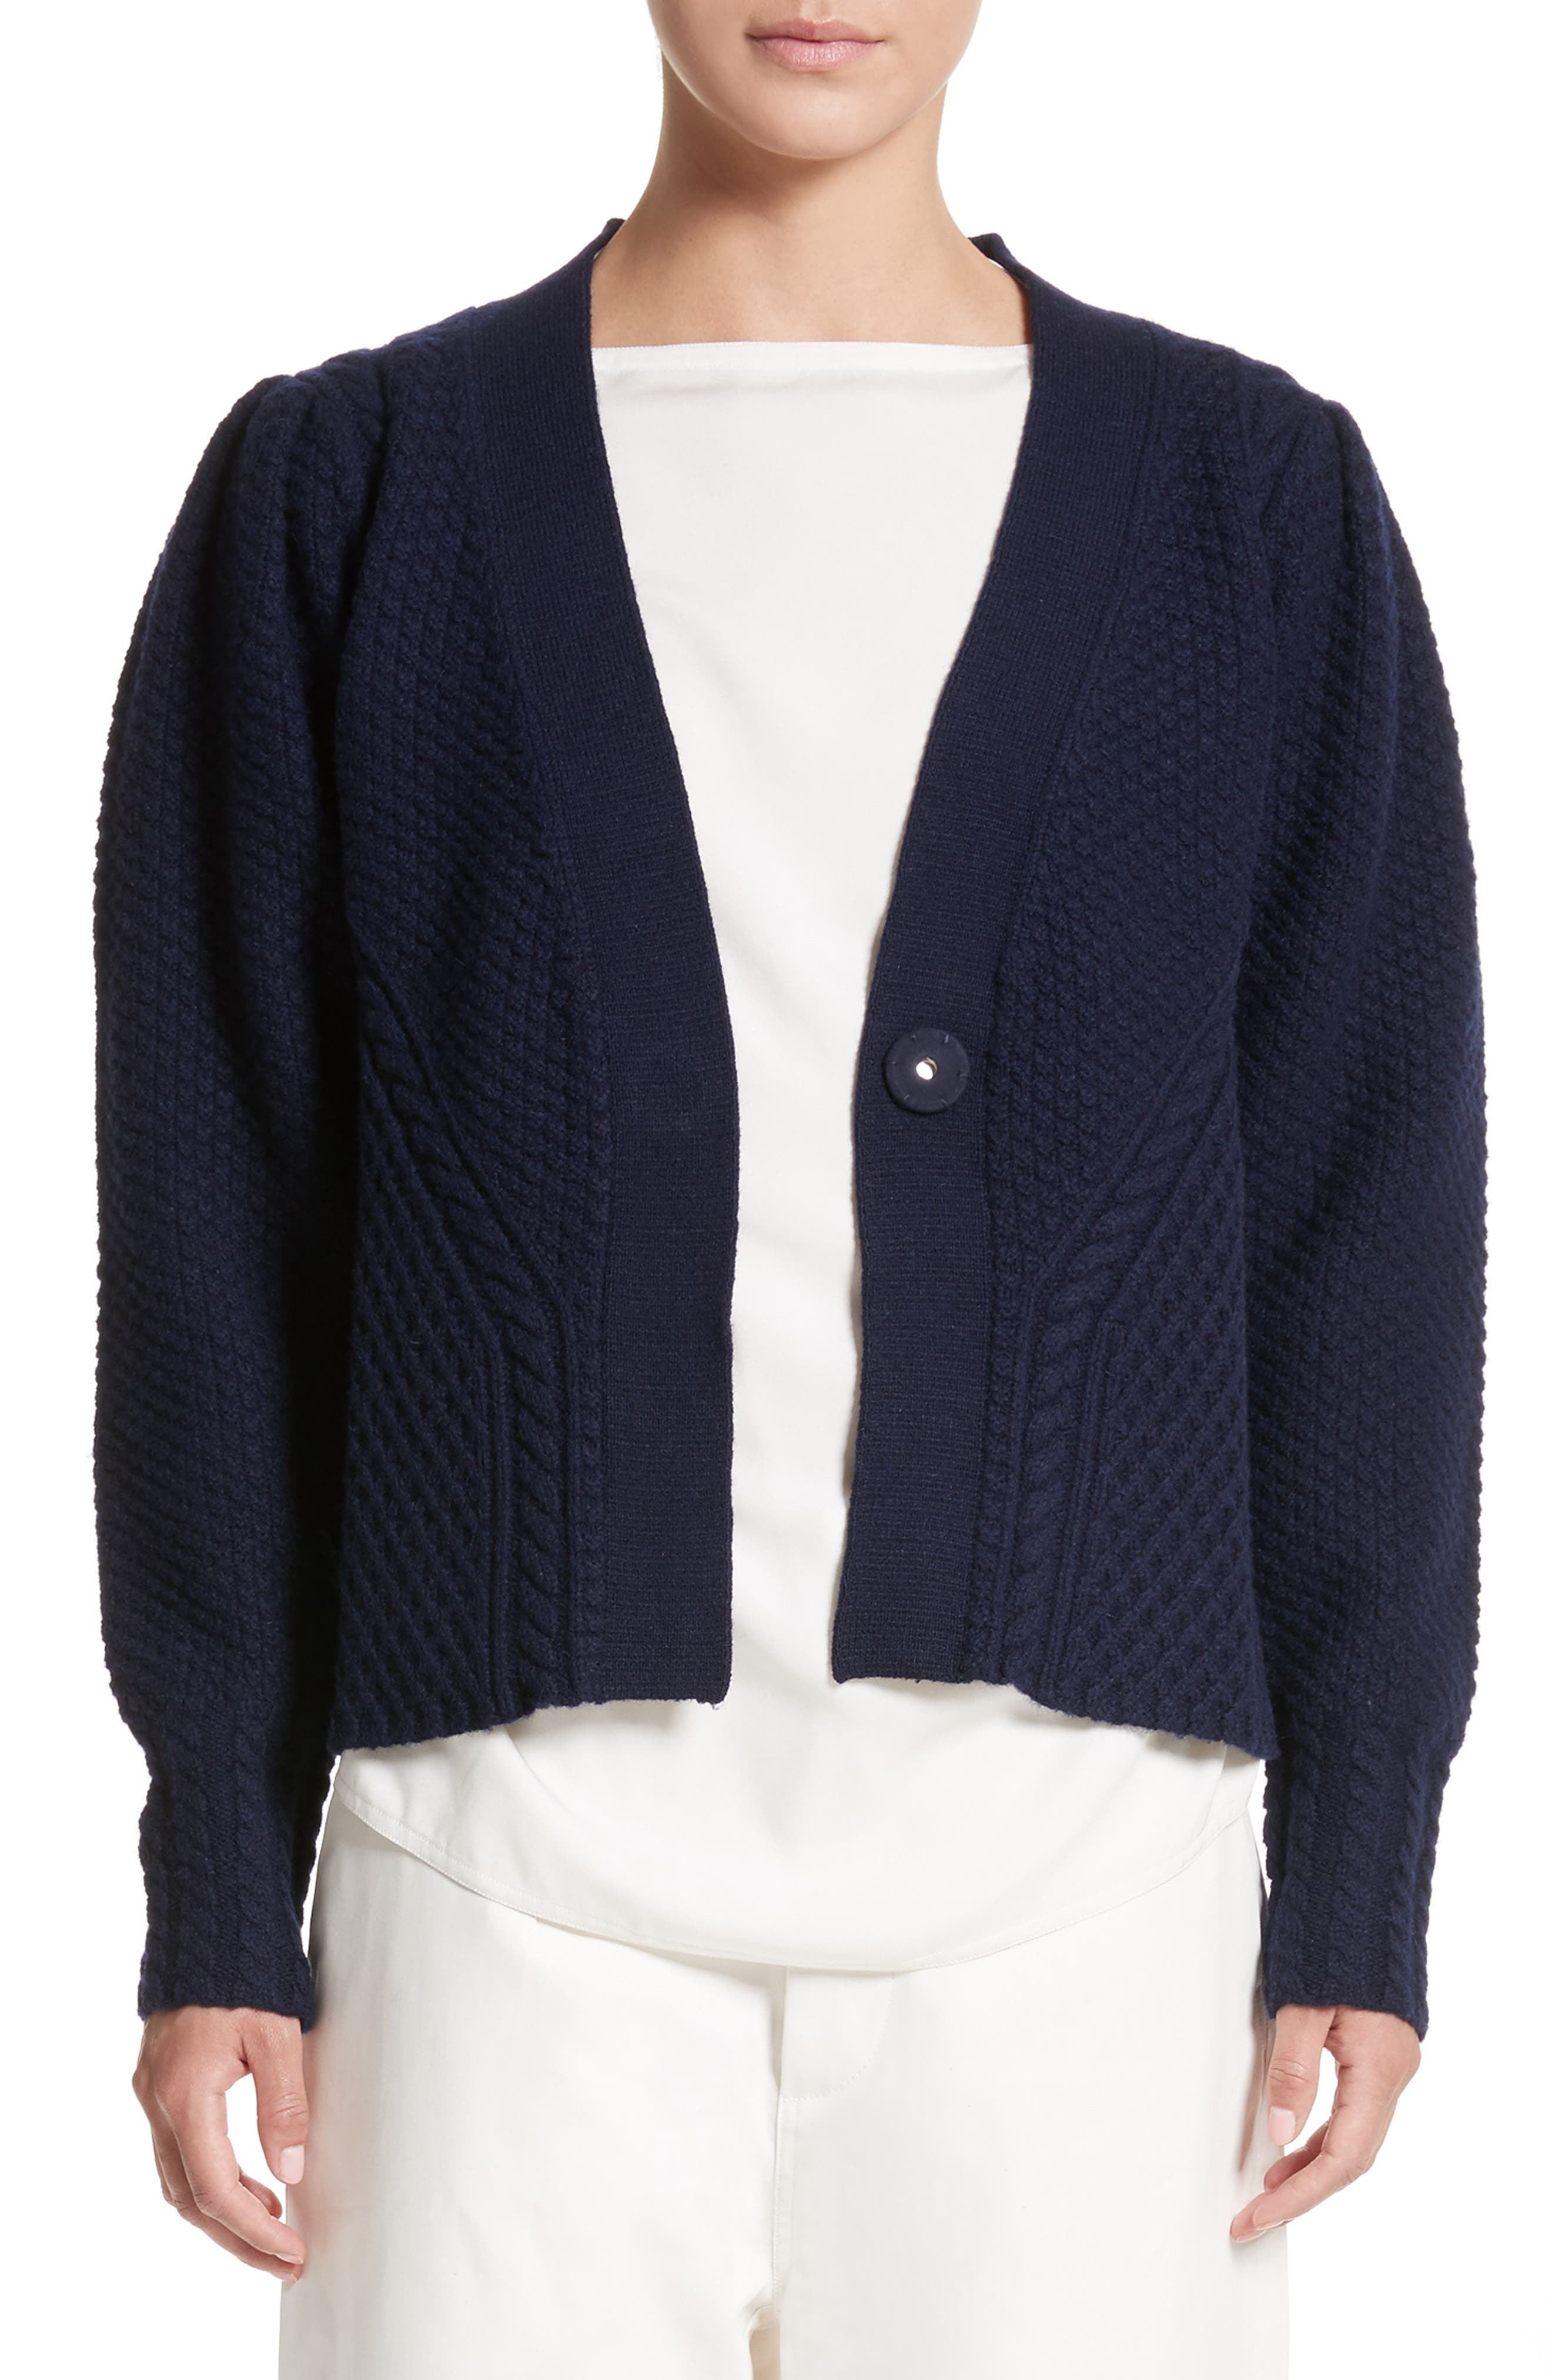 SOFIE DHOORE Mixed Stitch Wool Button Cardigan